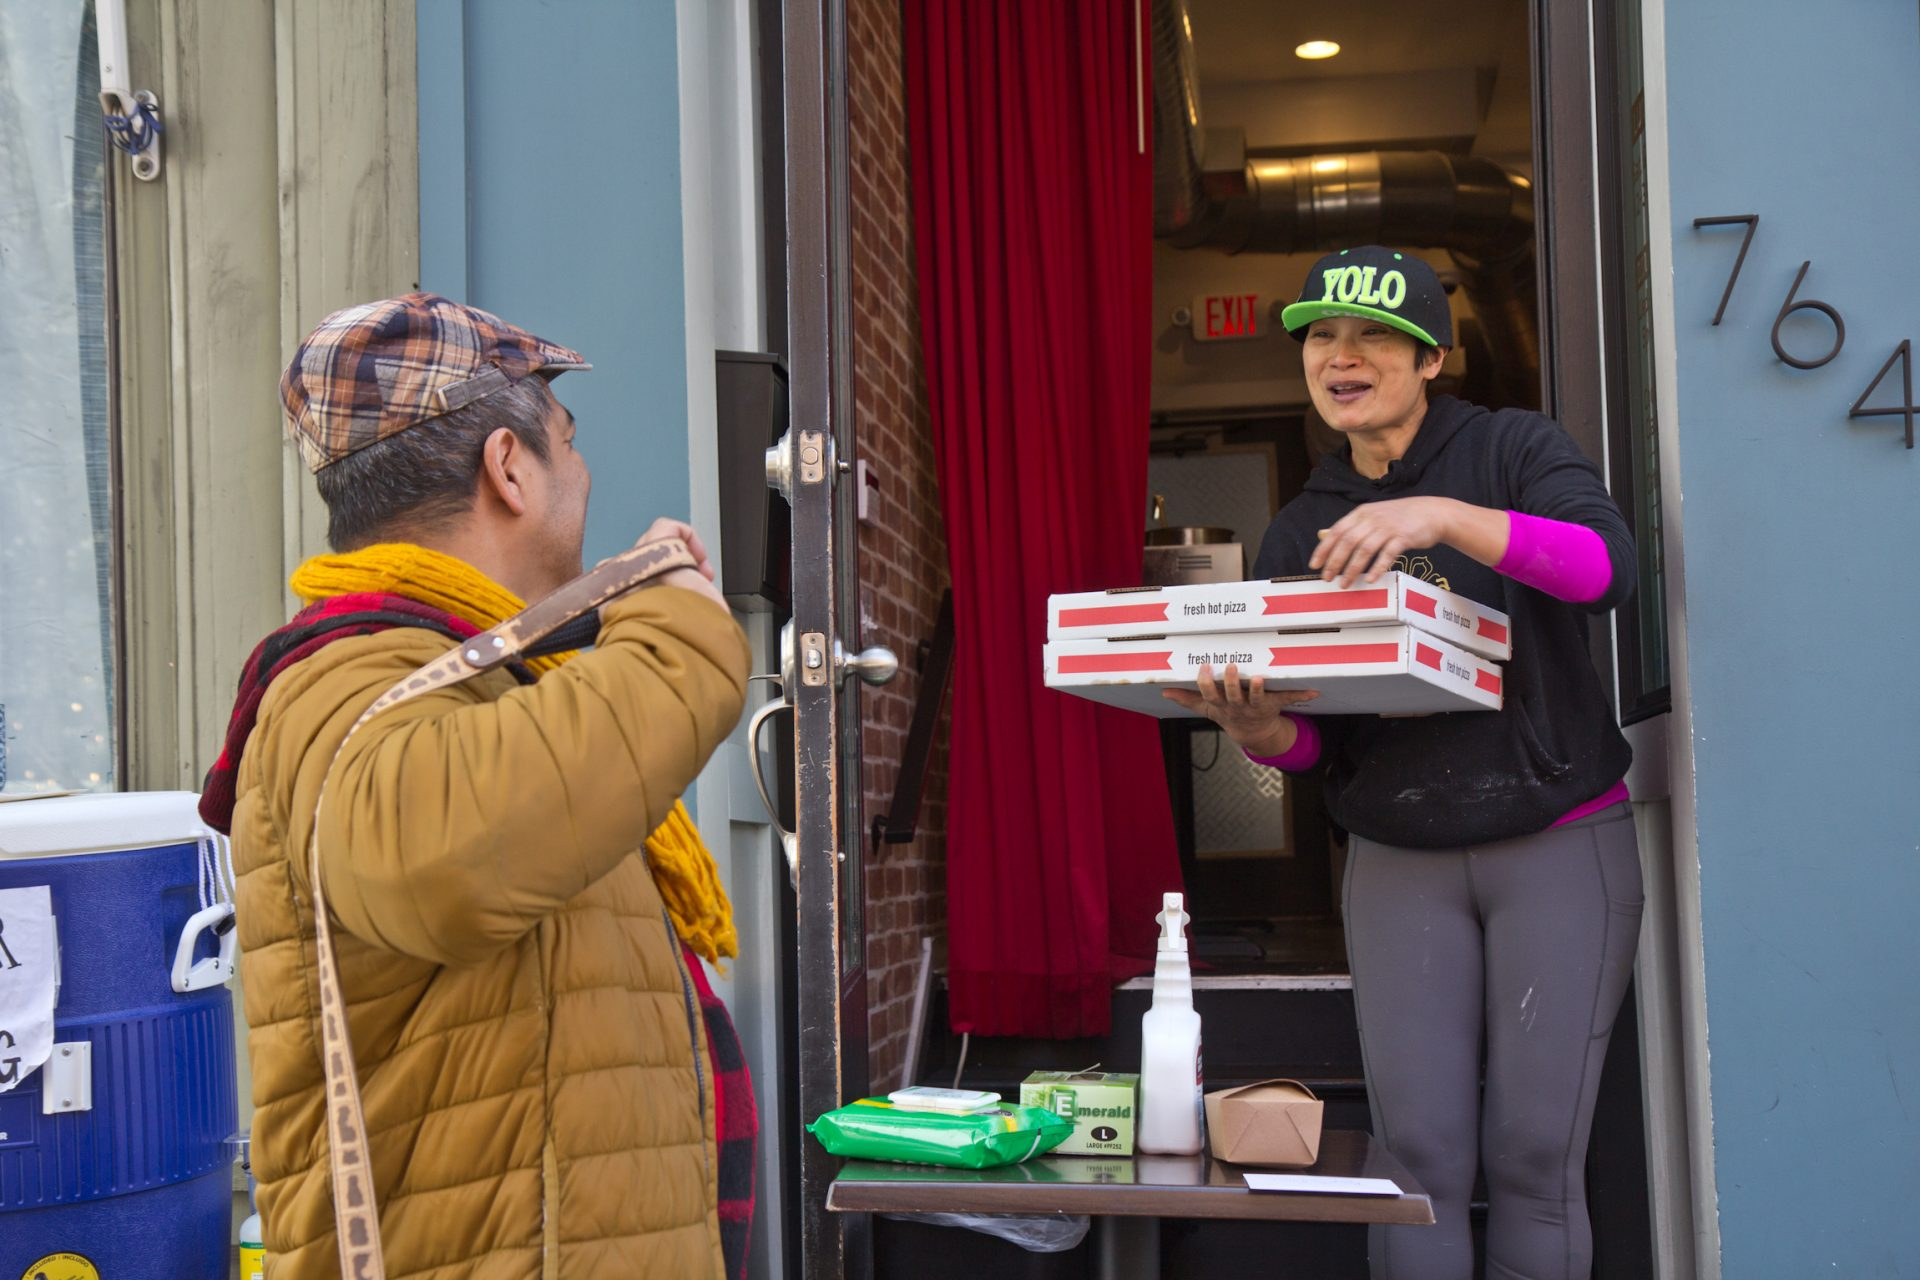 Kalaya owner Nok Suntaranon (right) hands out donated pizza to community members in need.